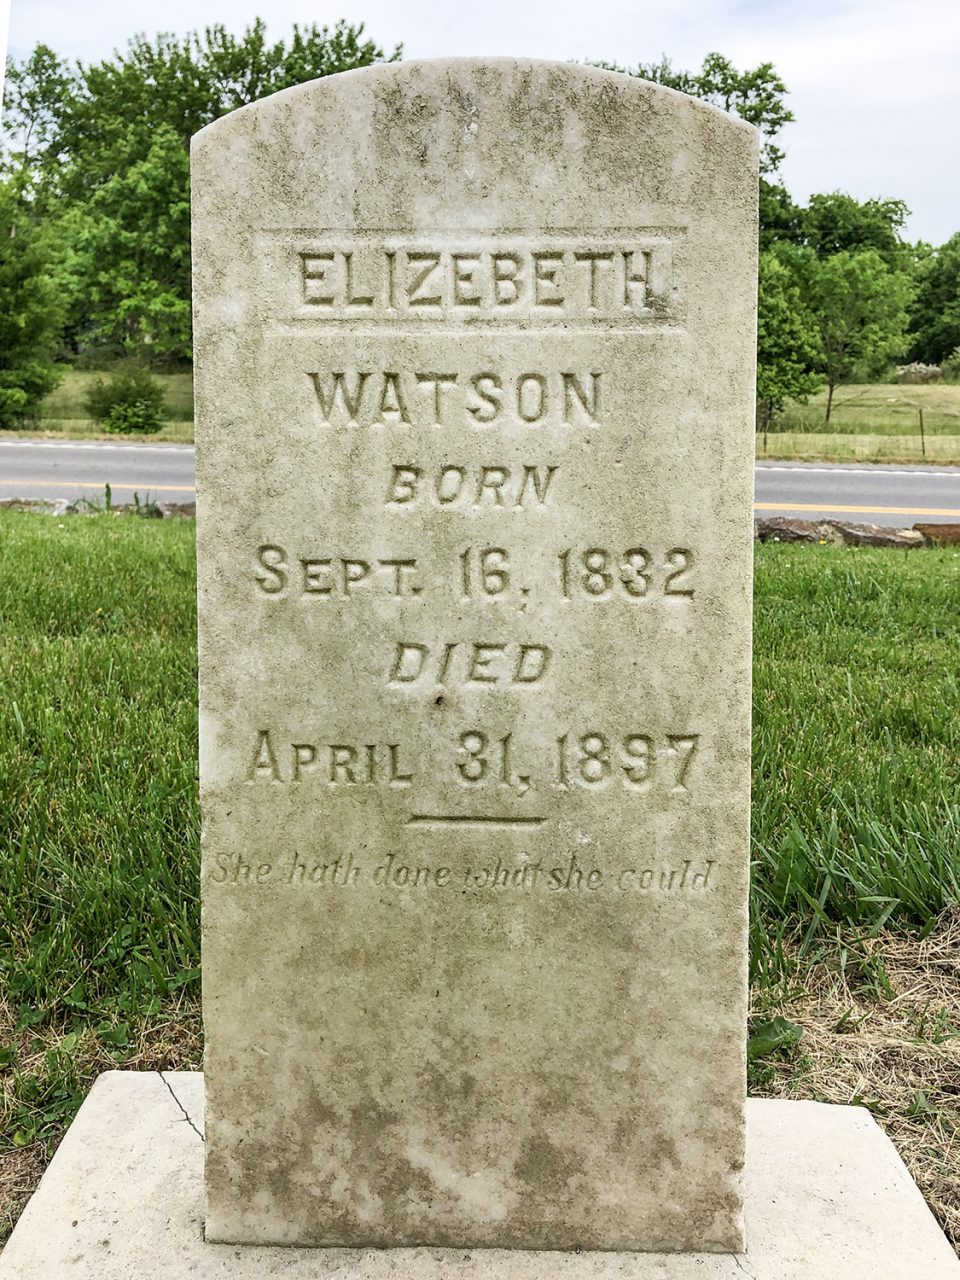 Tombstone for Elizabeth Watson, Born Sept. 16, 1832, Died April 31, 1897. She hath done what she could.